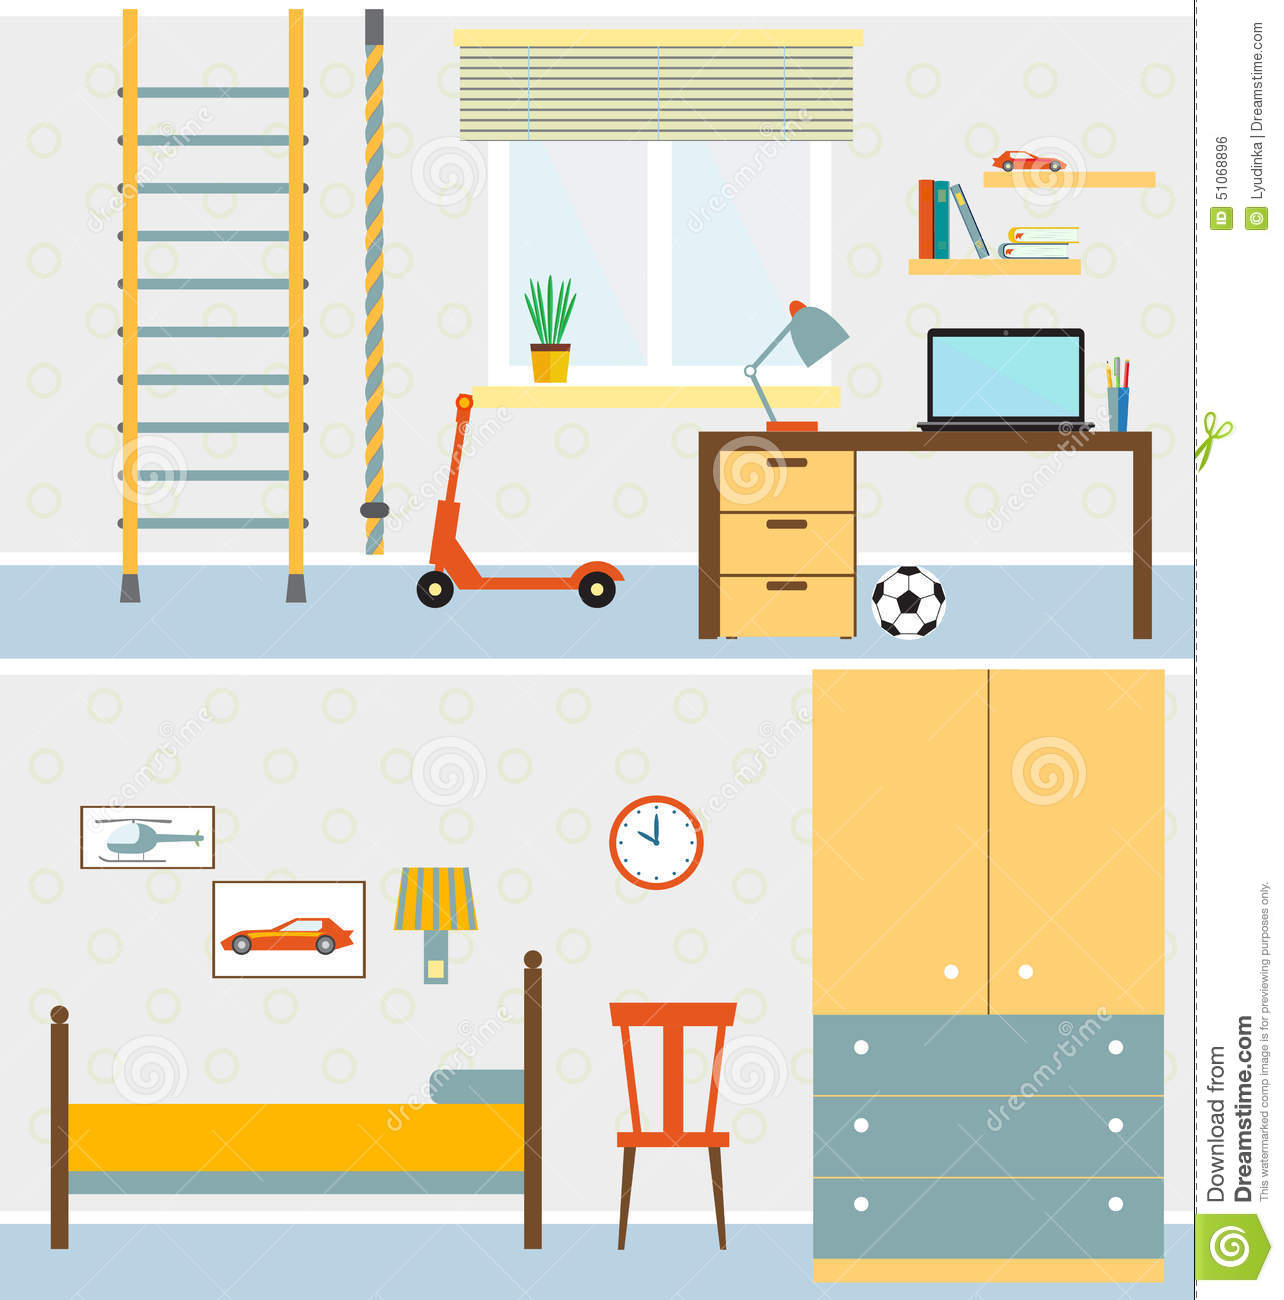 Flat boys room illustration stock vector illustration for Room design vector